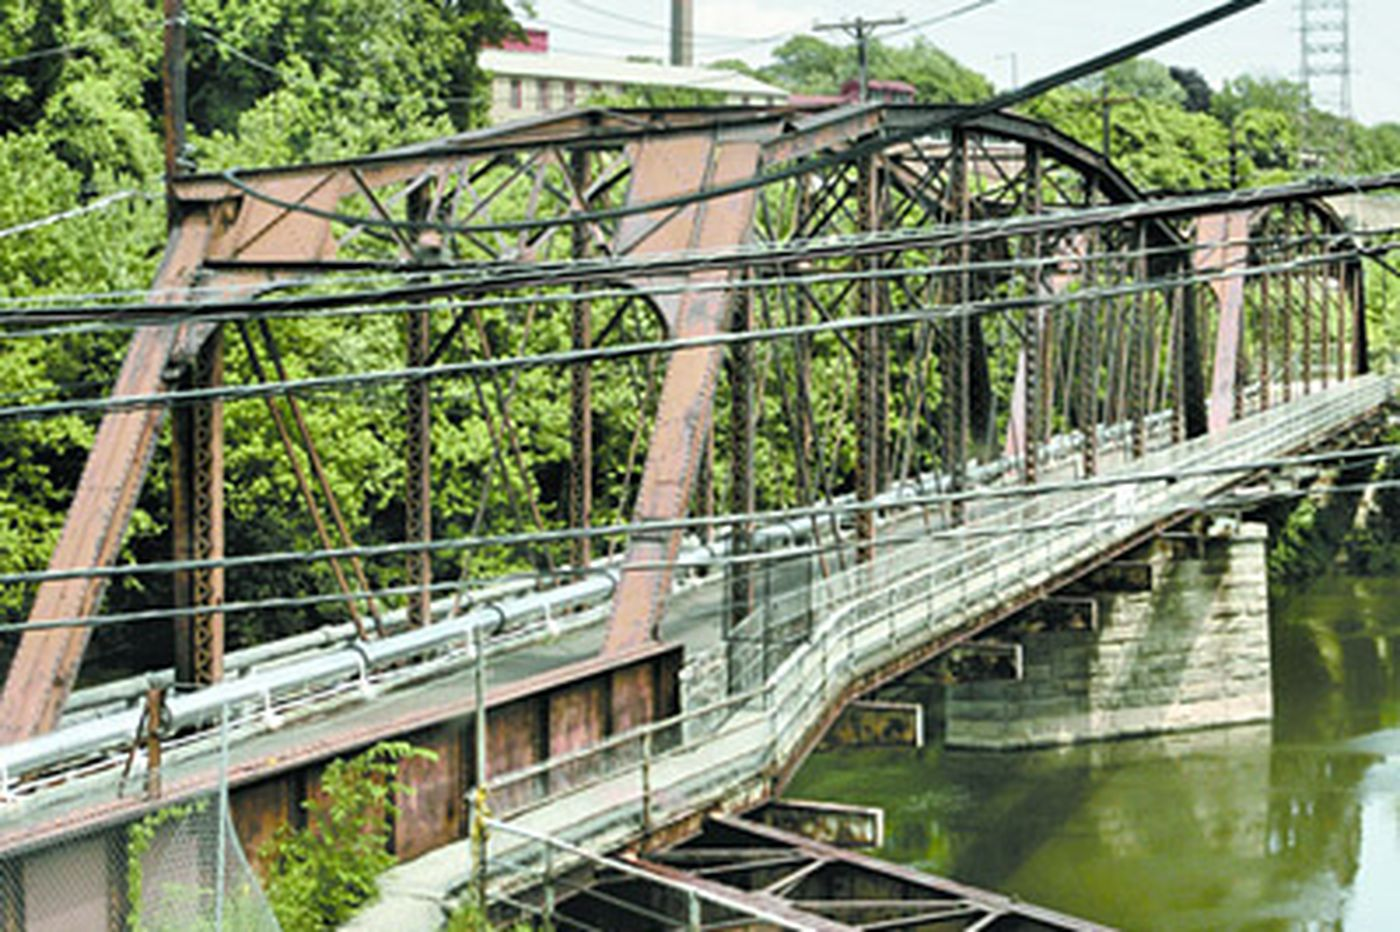 Changing Skyline: River is testing Lower Merion, too